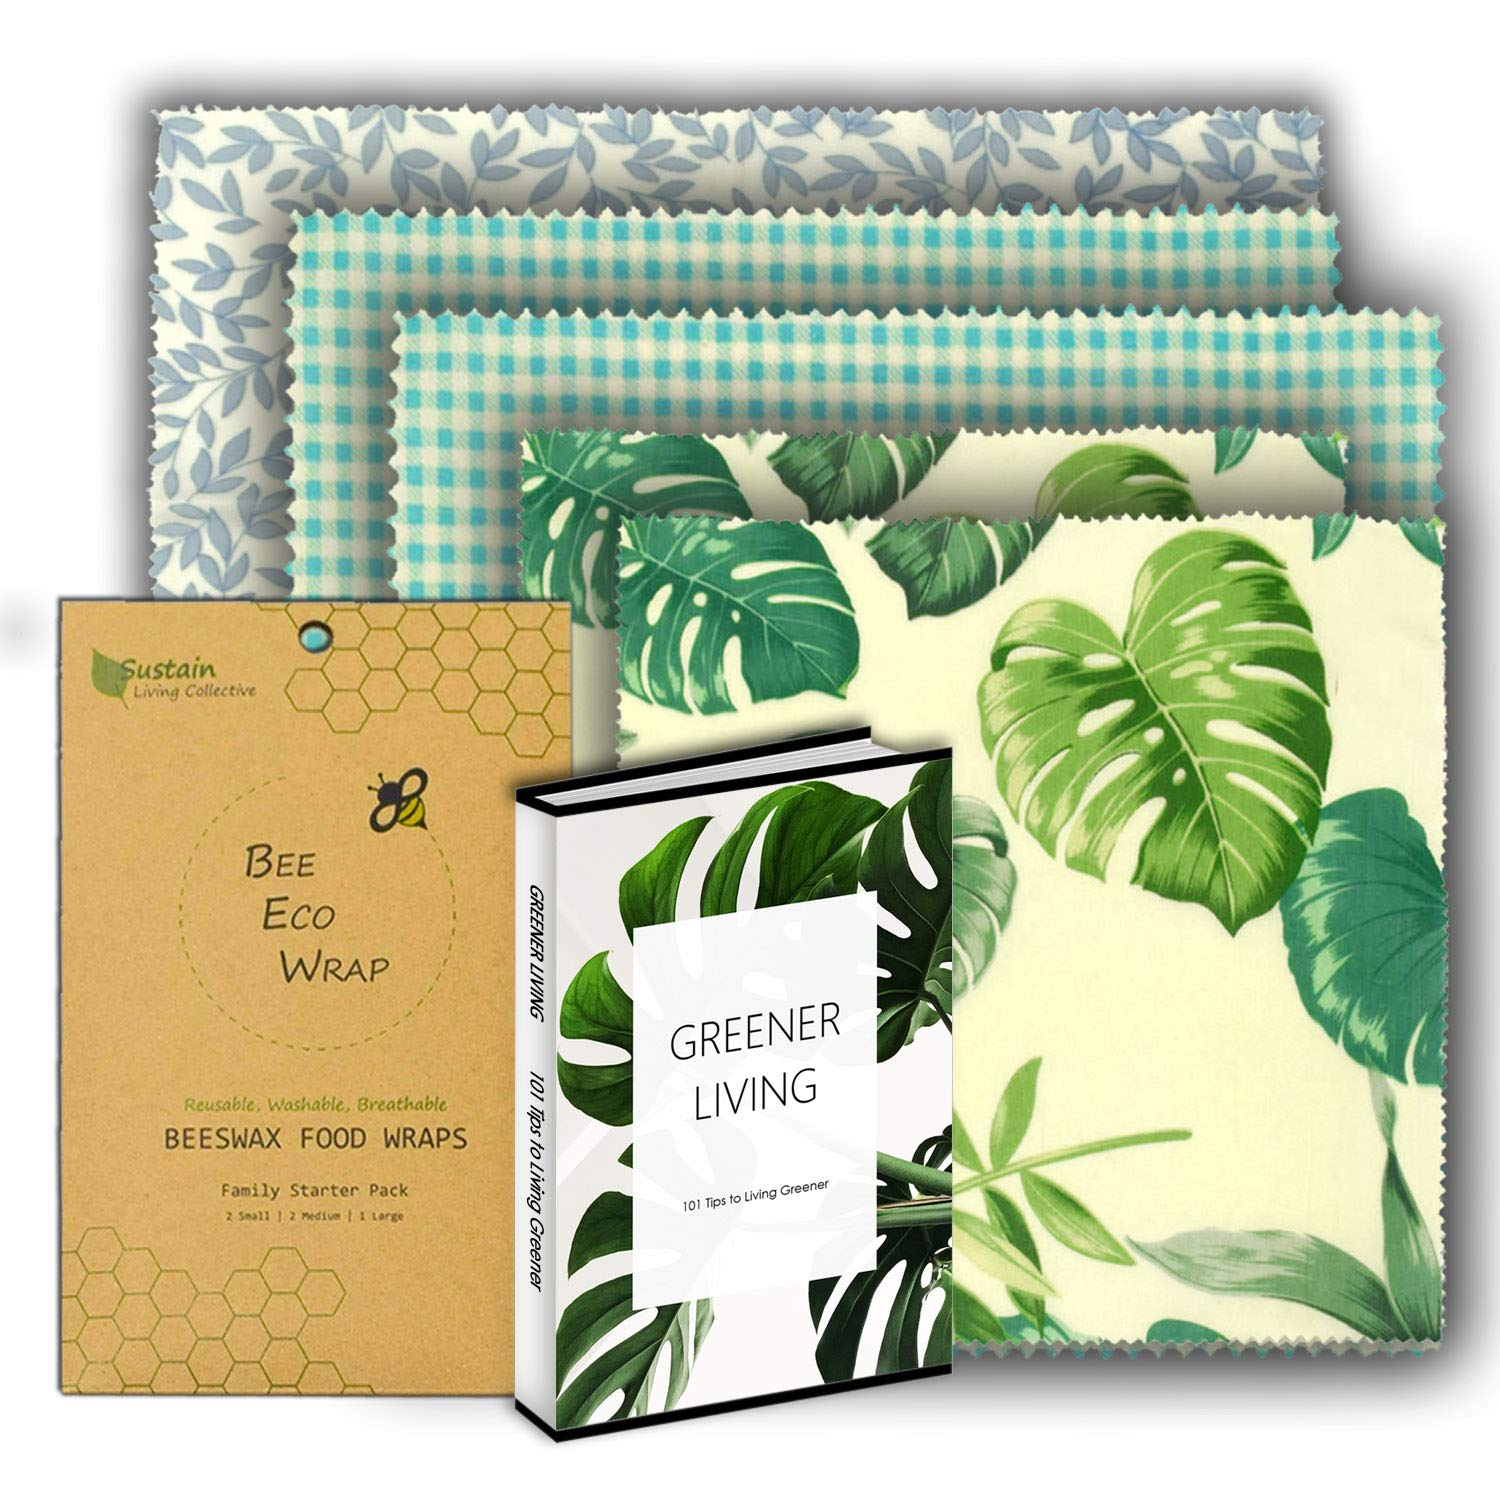 Beeswax Wraps Reusable Food and storage Wraps Plastic Free Eco-Friendly Assorted 5 pack 2xSmall 2xMedium 1xLarge by Bee Eco Wraps